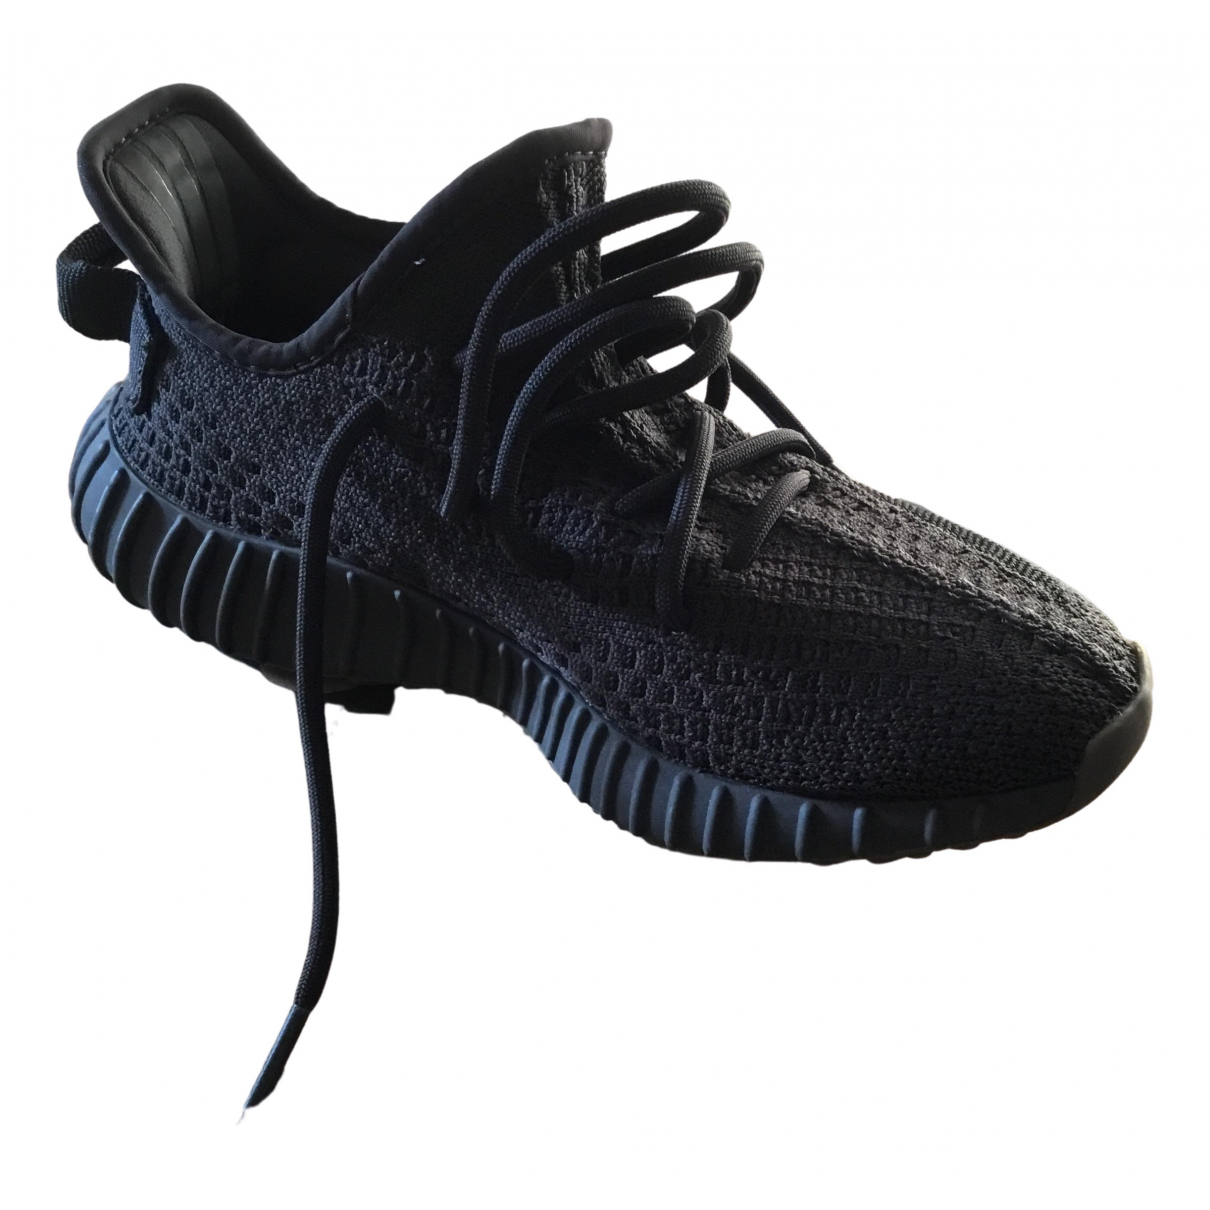 Yeezy X Adidas Boost 350 V2 Black Trainers for Women 4 UK